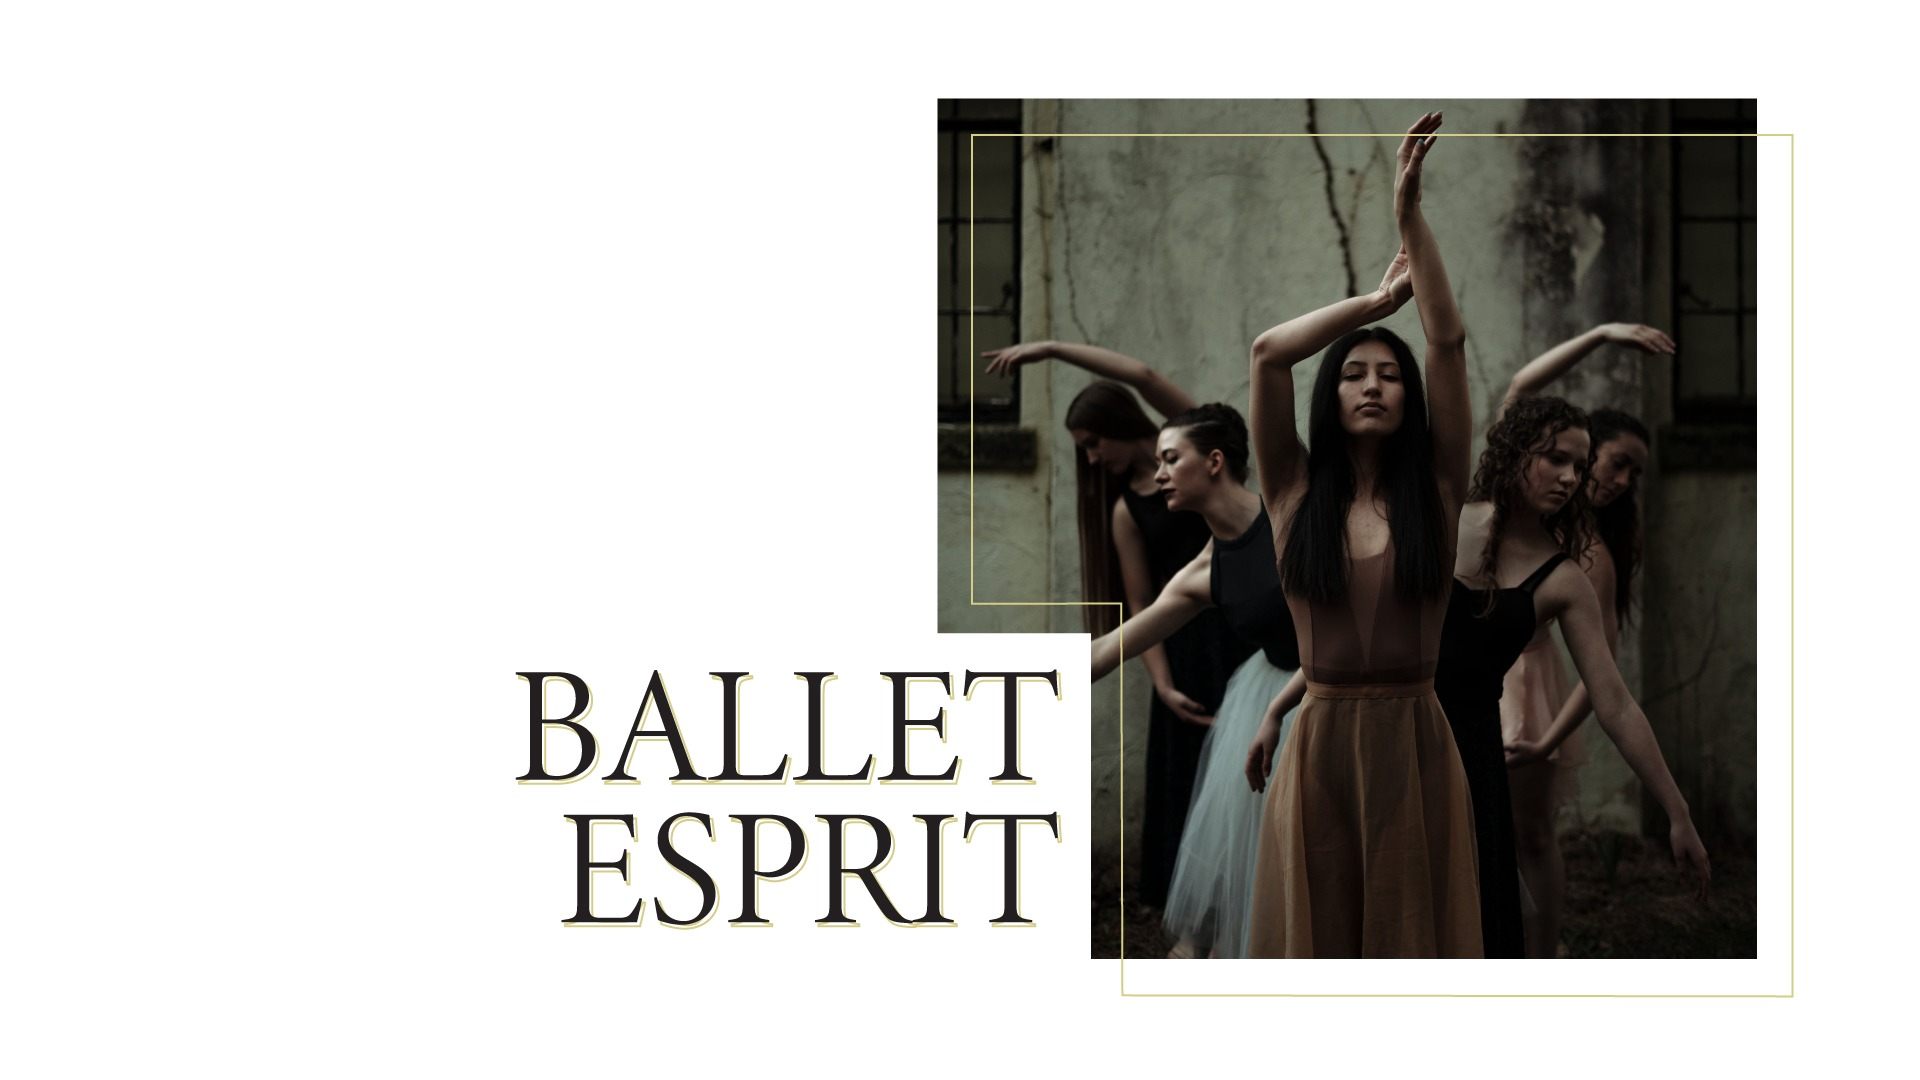 Ballet dancers with their arms overhead leaning on either side of a woman in front.